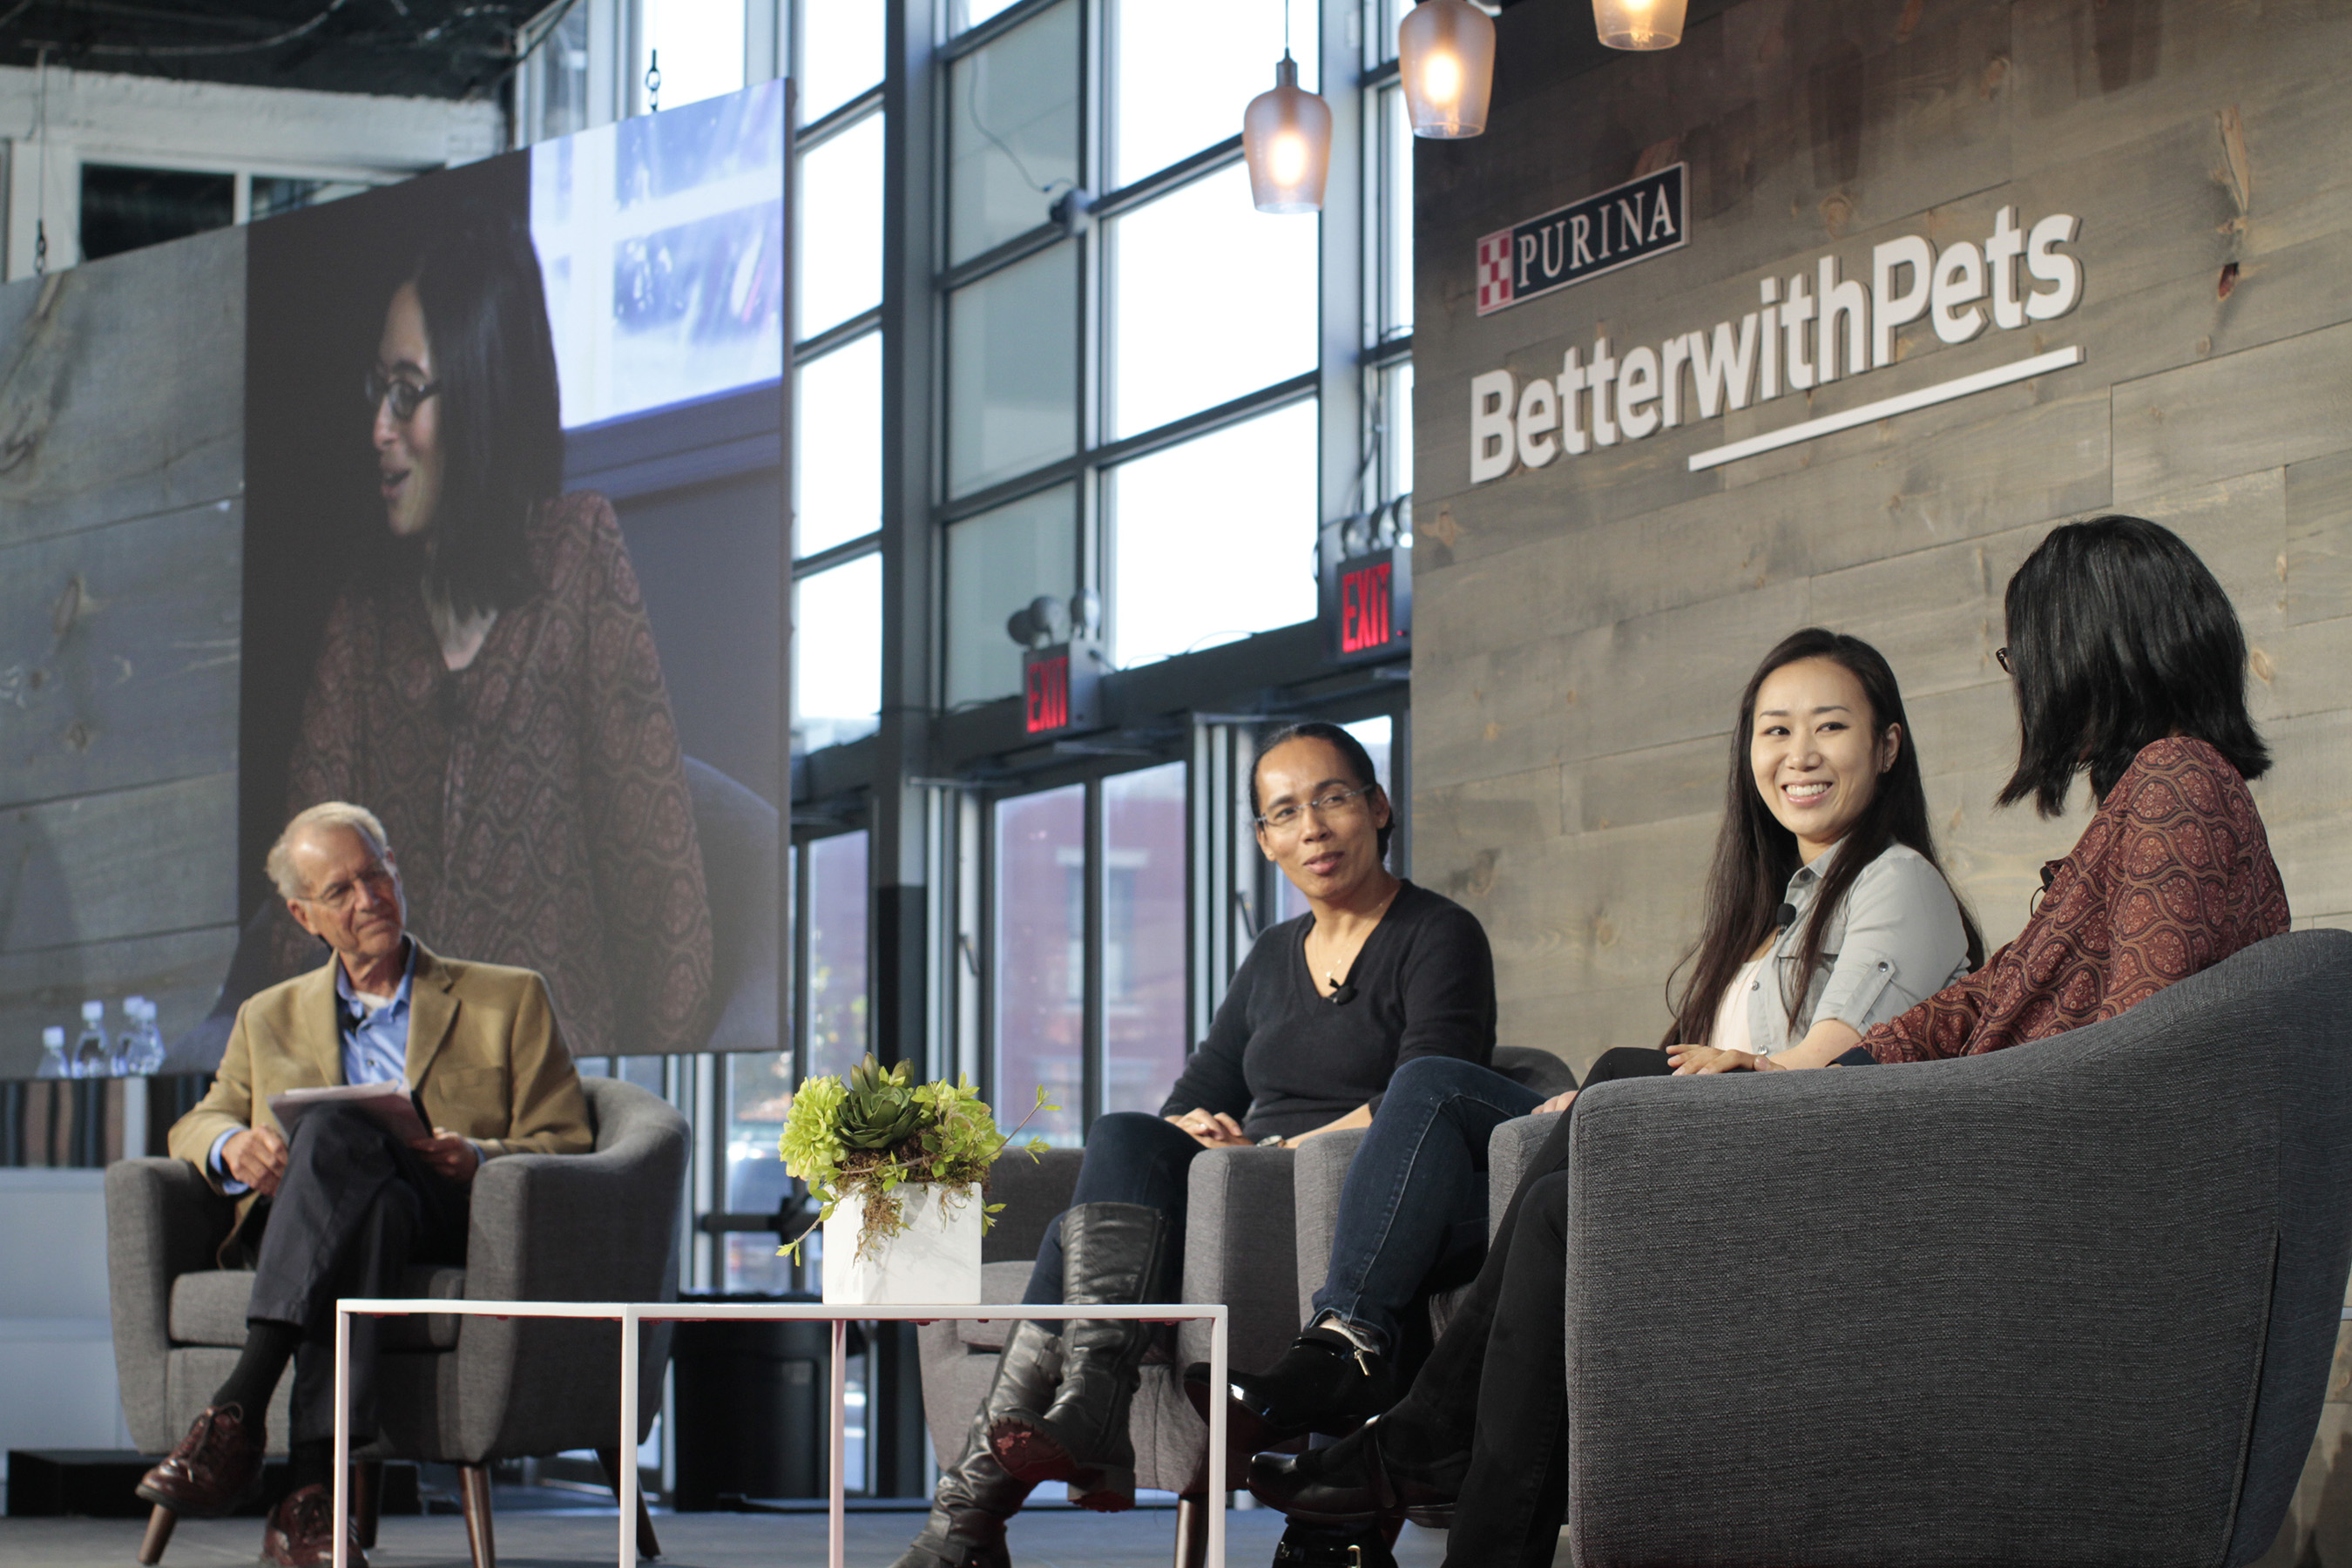 Purina's third-annual Better With Pets Summit featured three panel discussions exploring different themes across emotional wellness among pets and people.